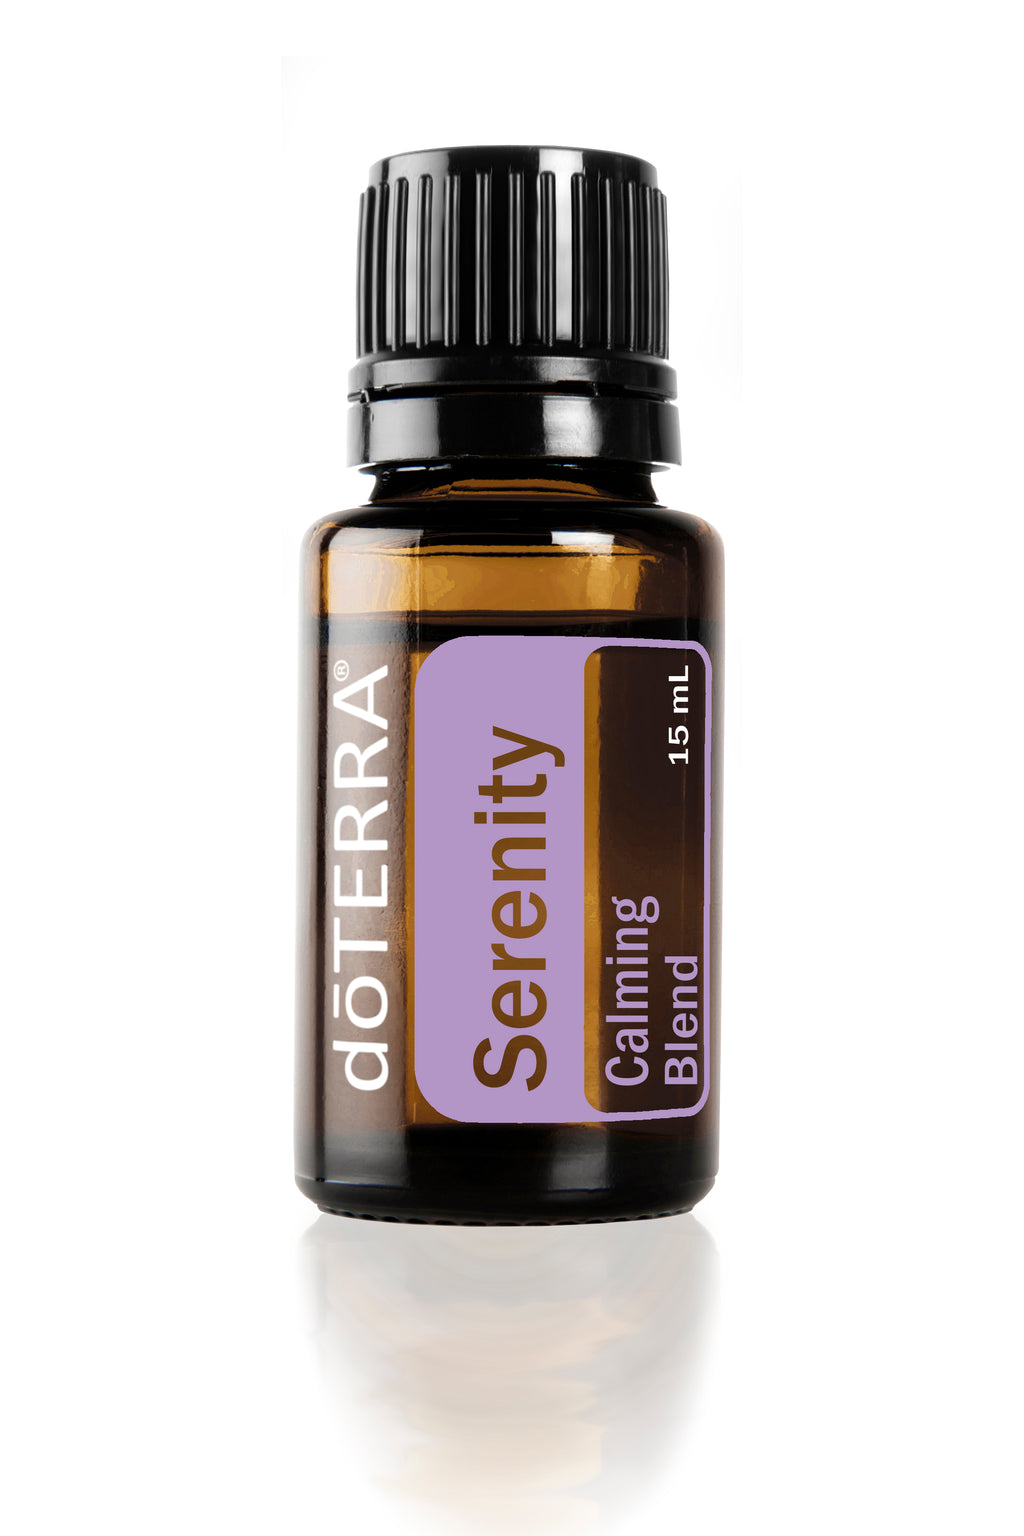 doTERRA Serenity Essential Oil - Purity of Earth